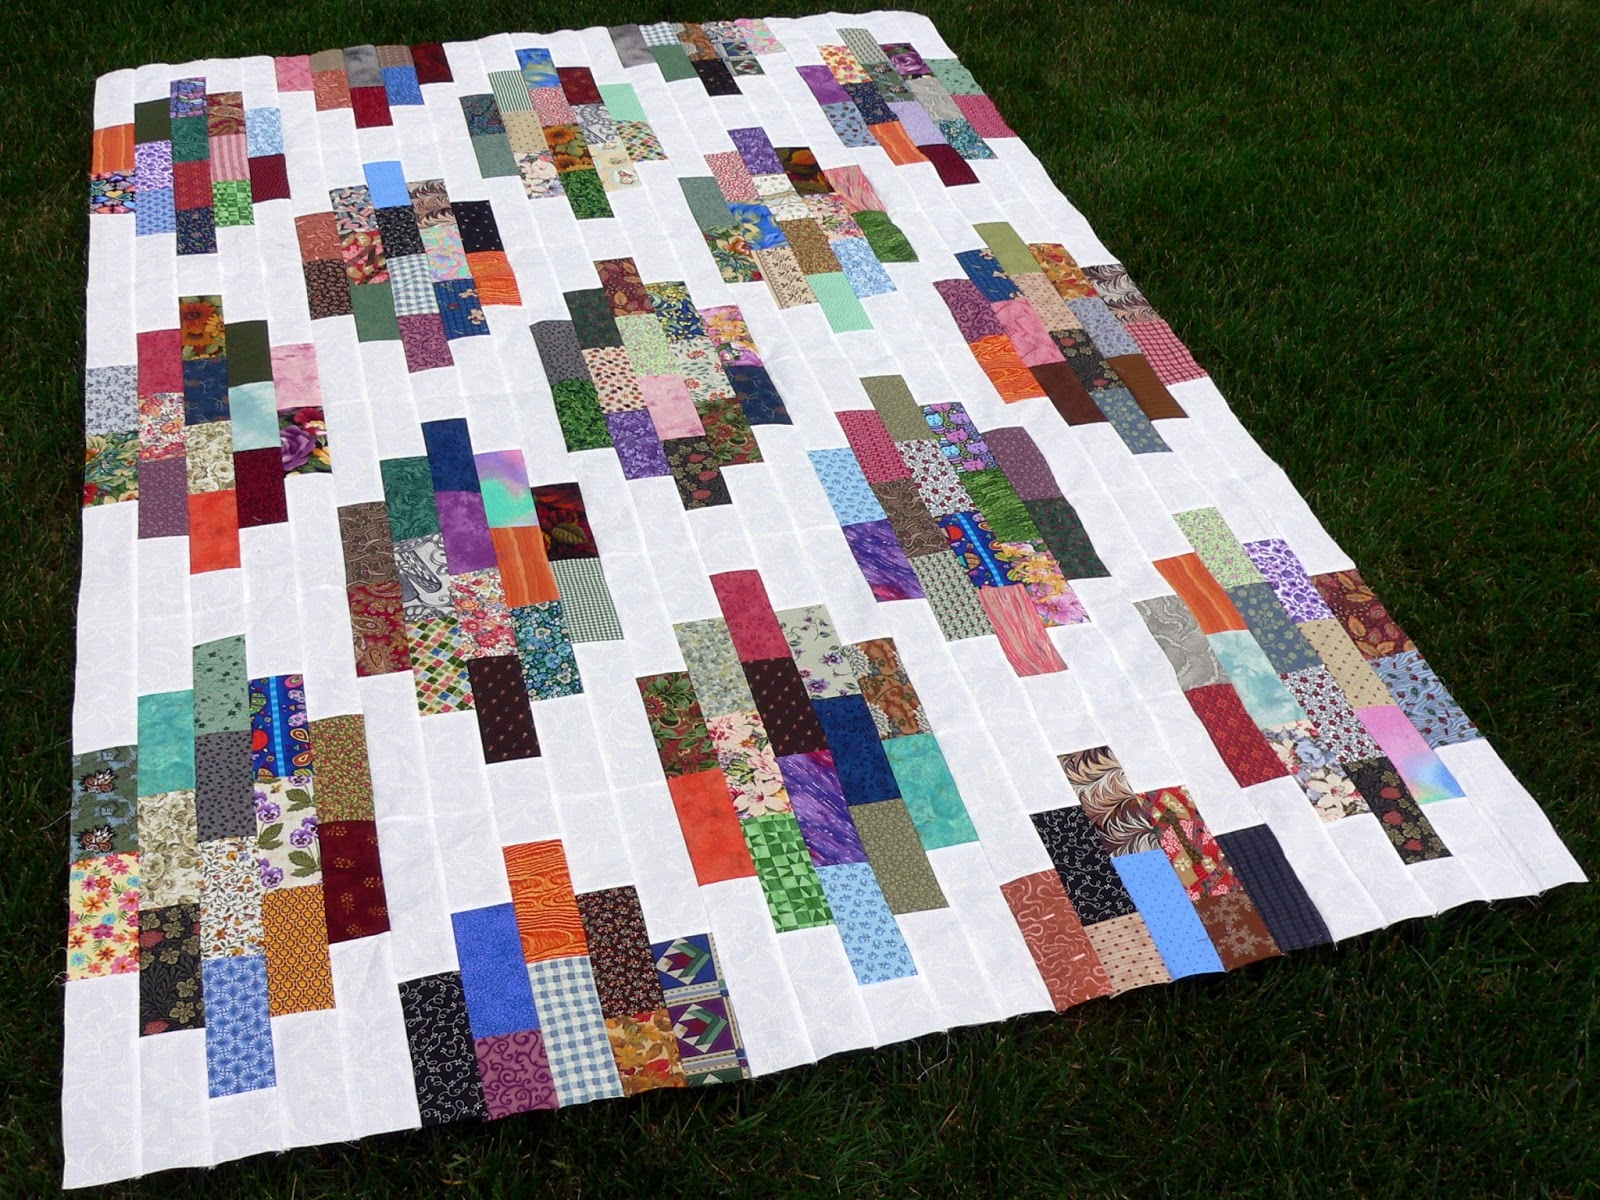 Asimplelife Quilts Q4 Finish A Long Goals